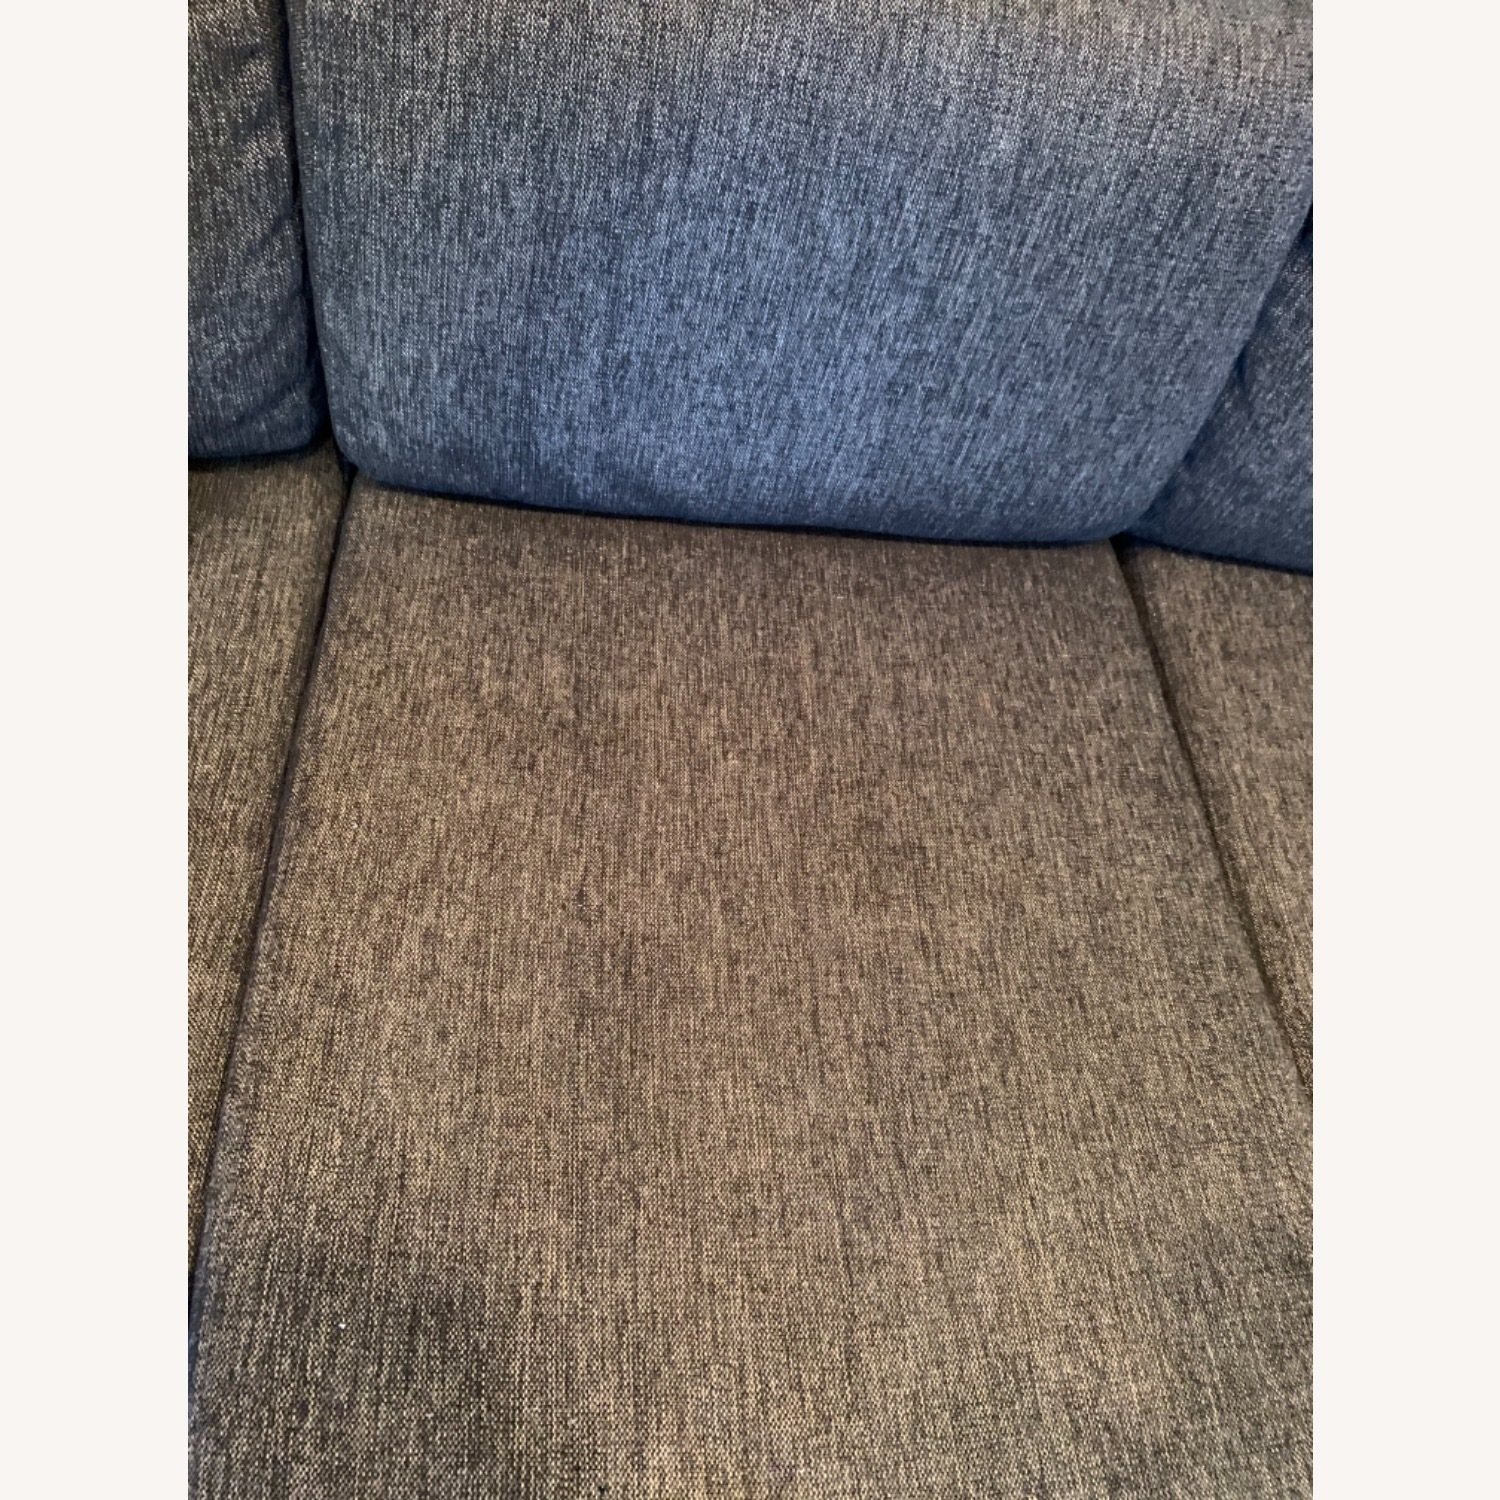 Gus Modern Gray Couch - image-4